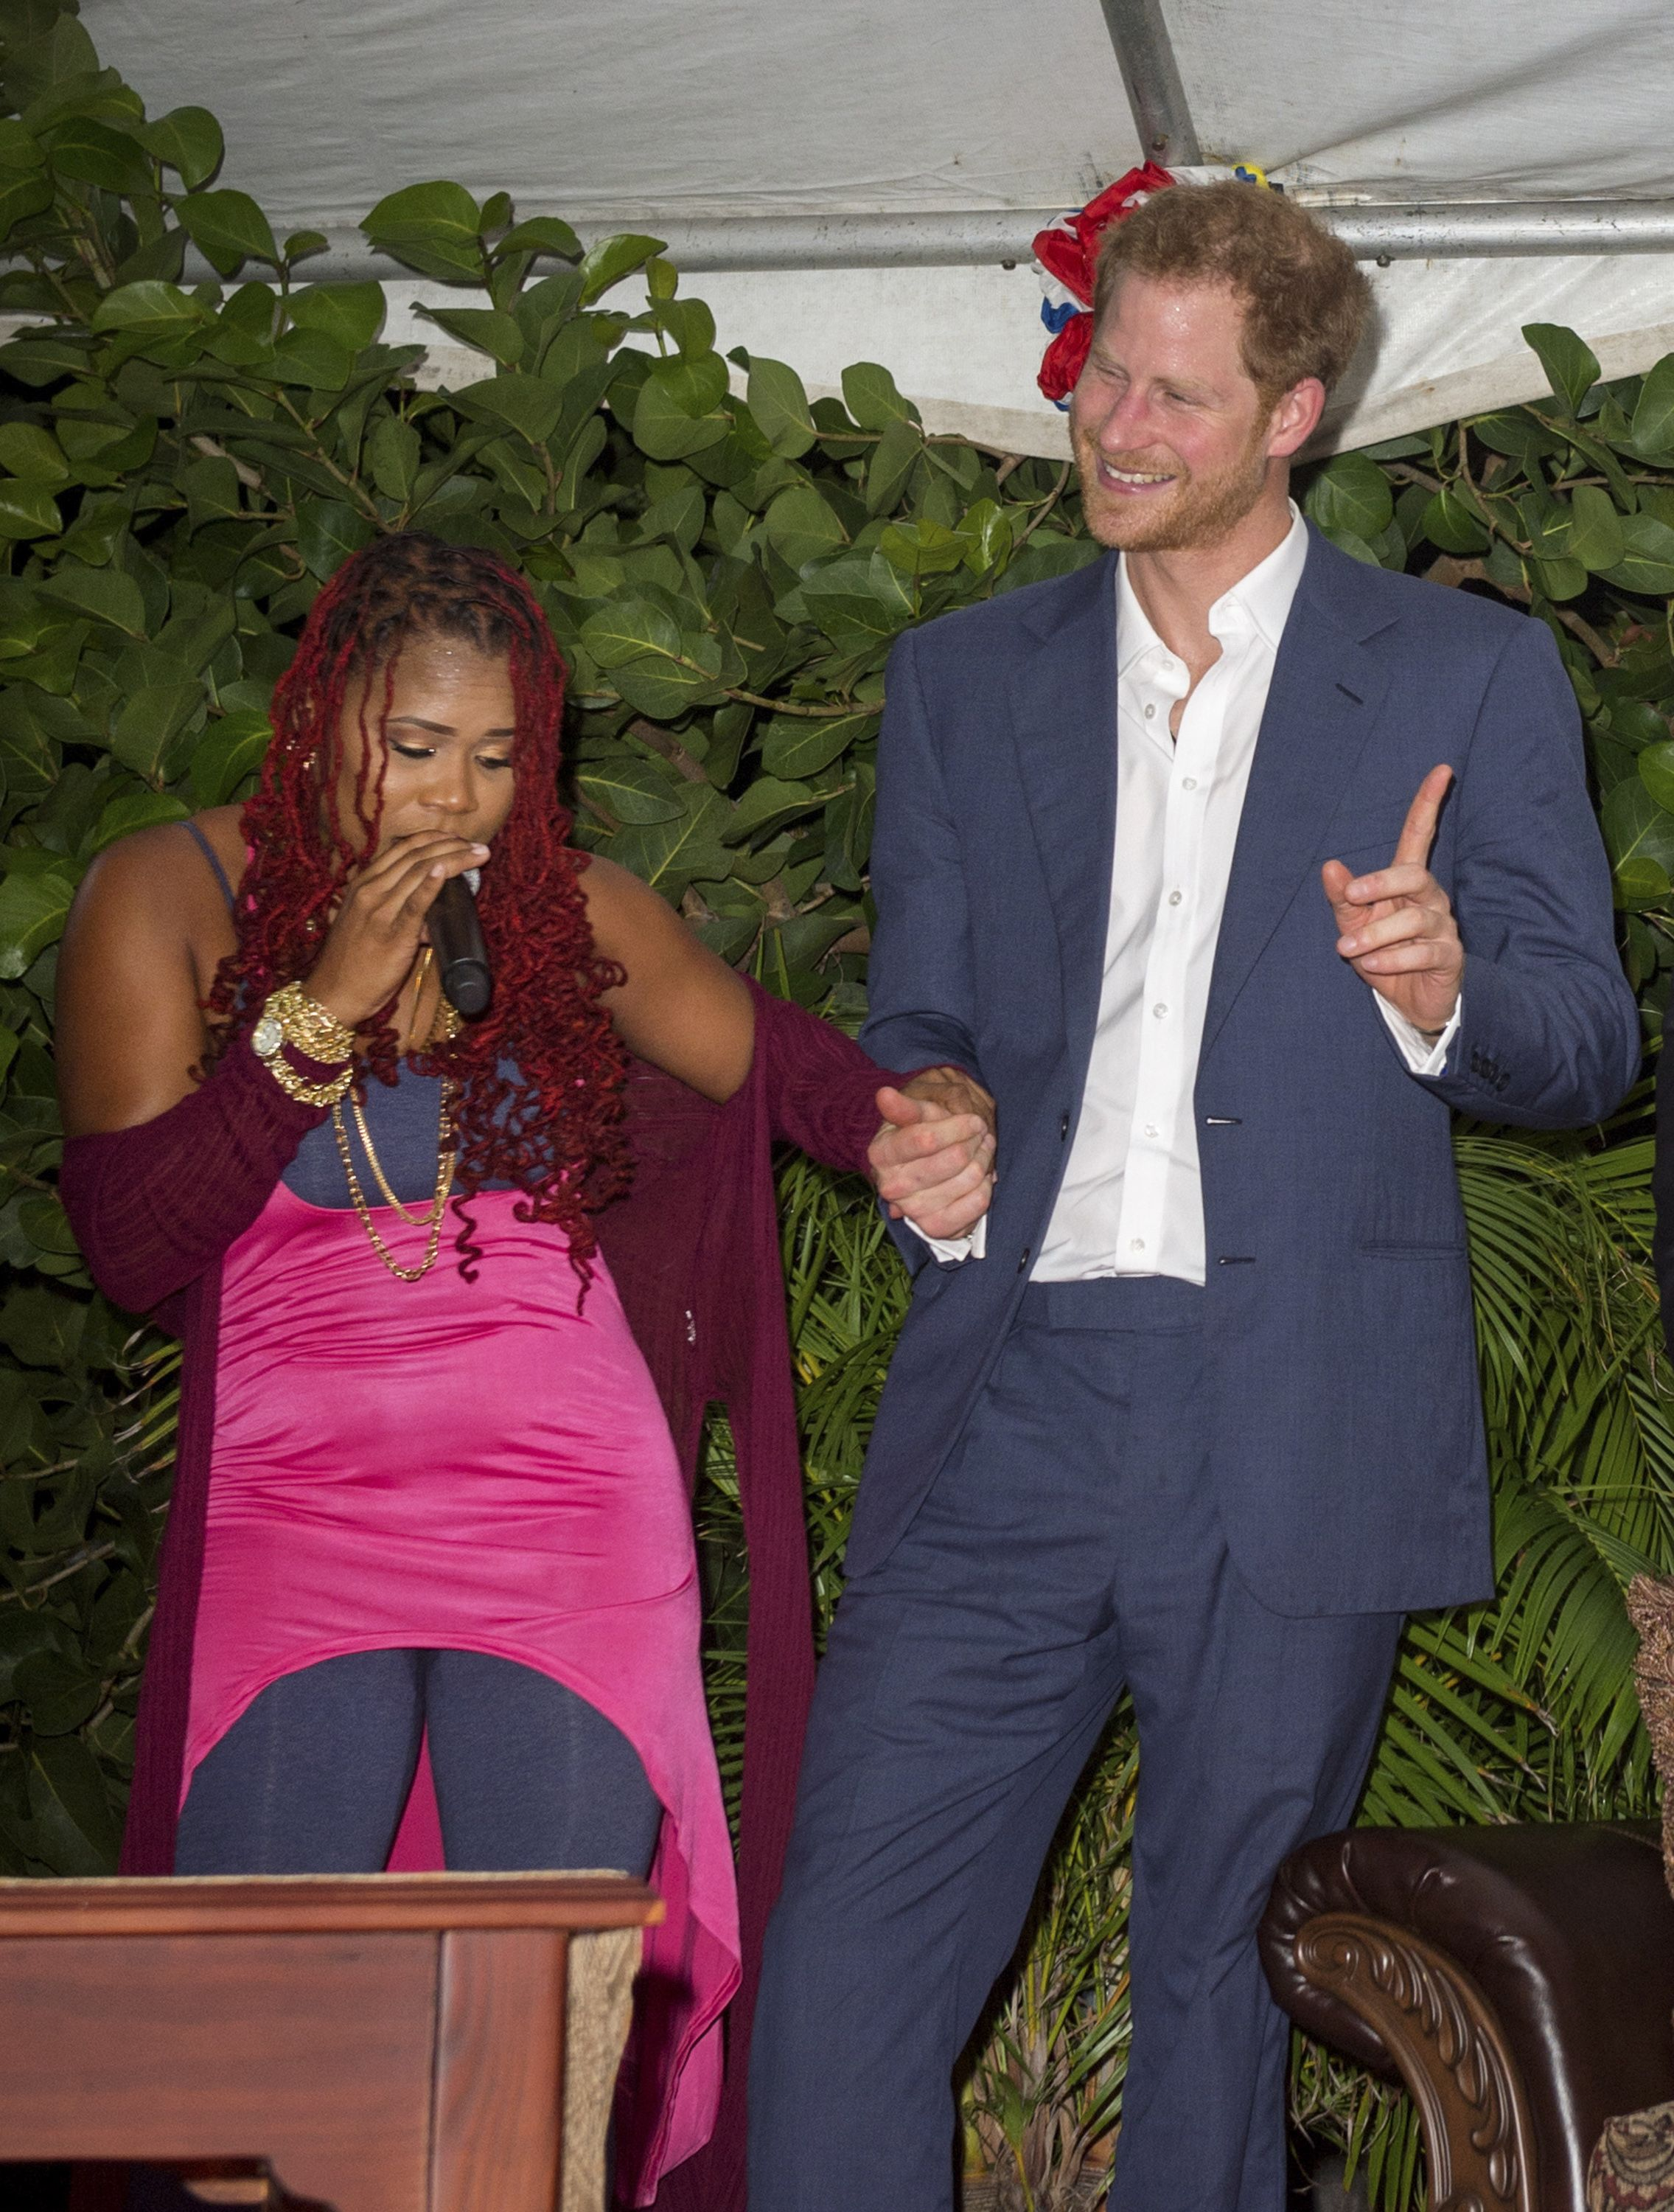 Prince Harry Visits The Caribbean - Day 2